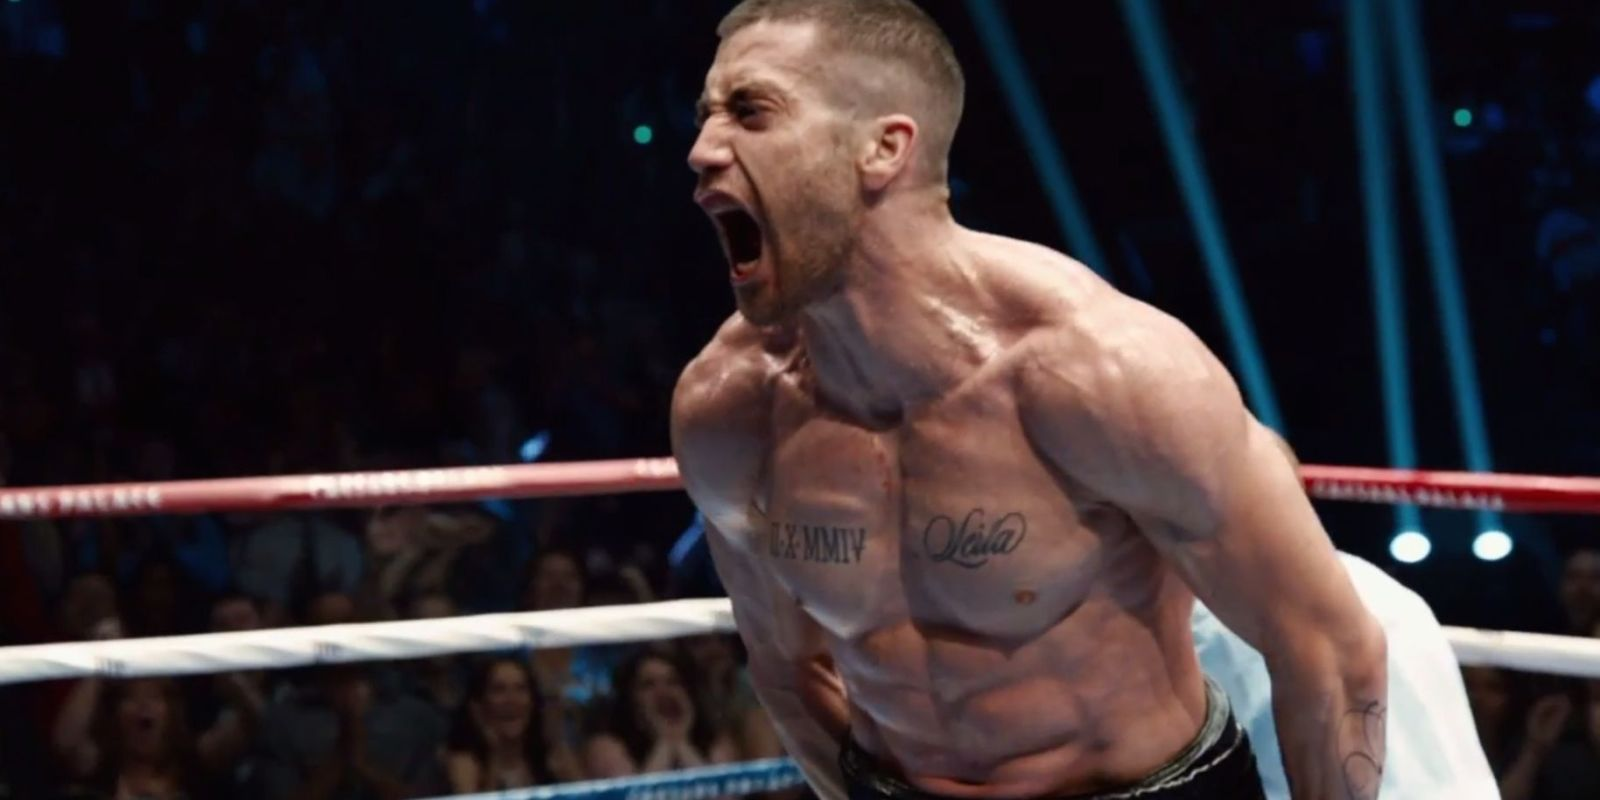 Jake Gyllenhaal in Southpaw as the world class boxer